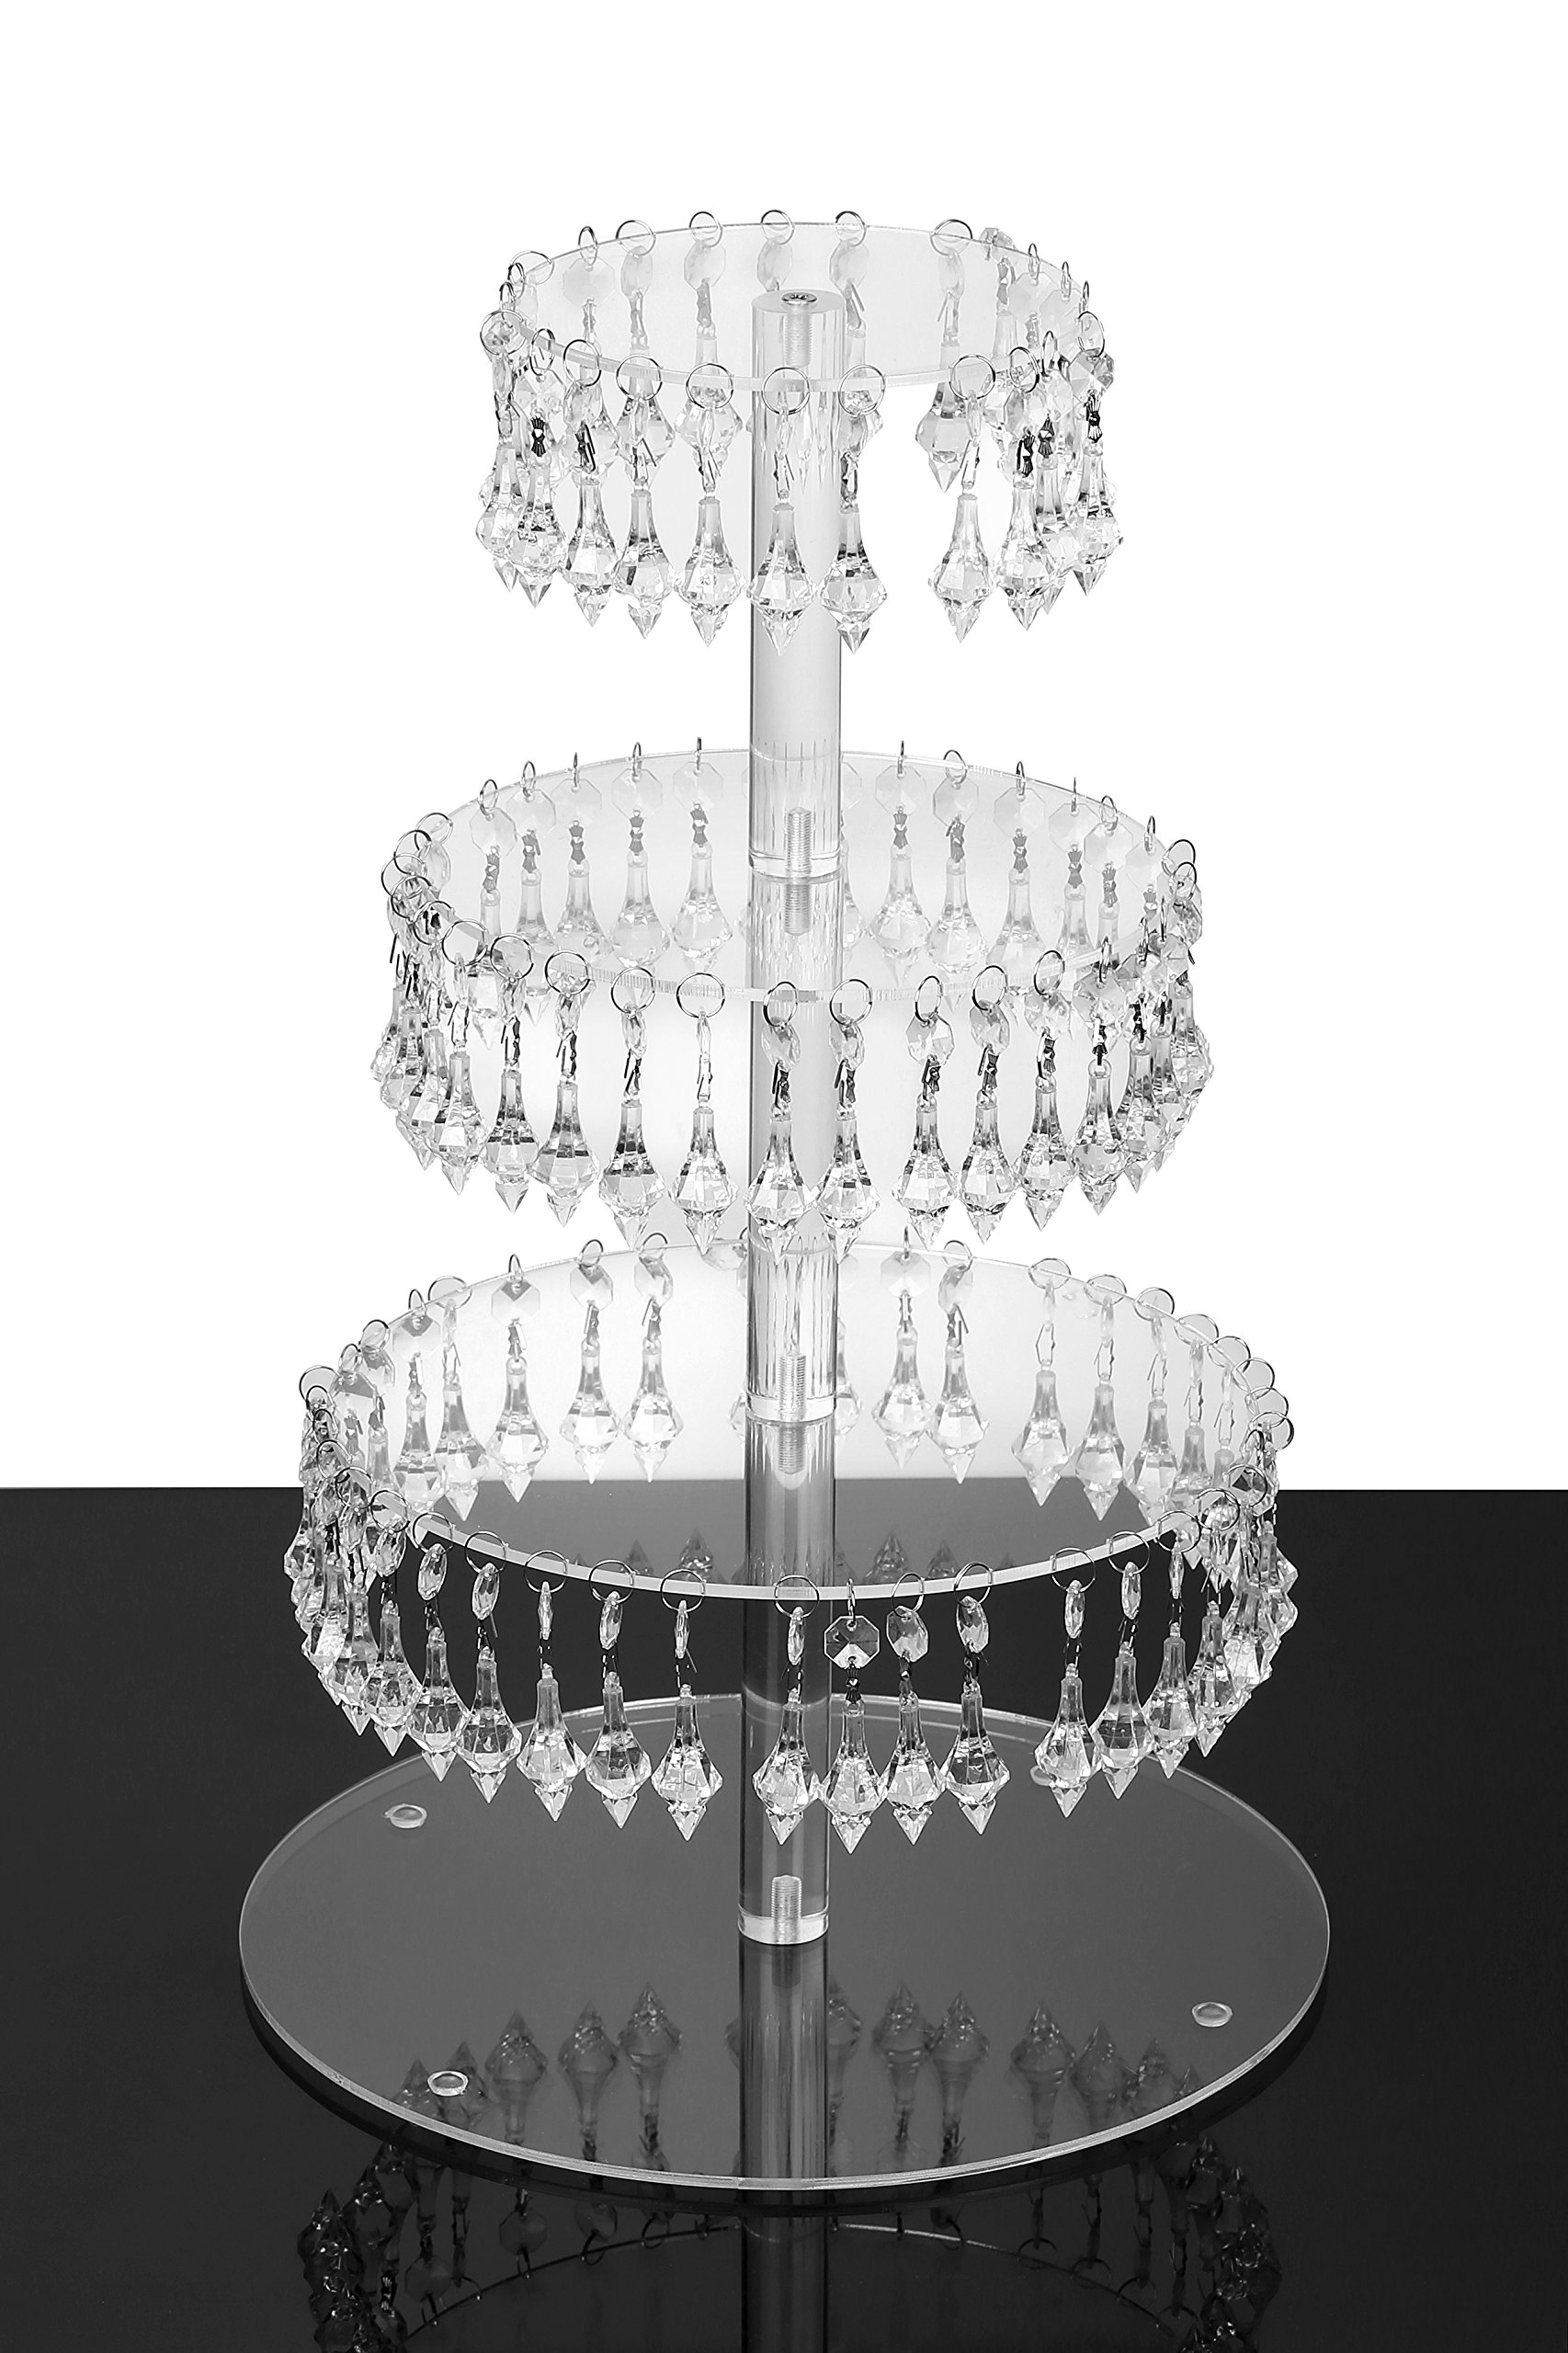 YestBuy Pendant Drill 4 Tier Round Acrylic Cupcake Stand 1 pc/Pack ¡